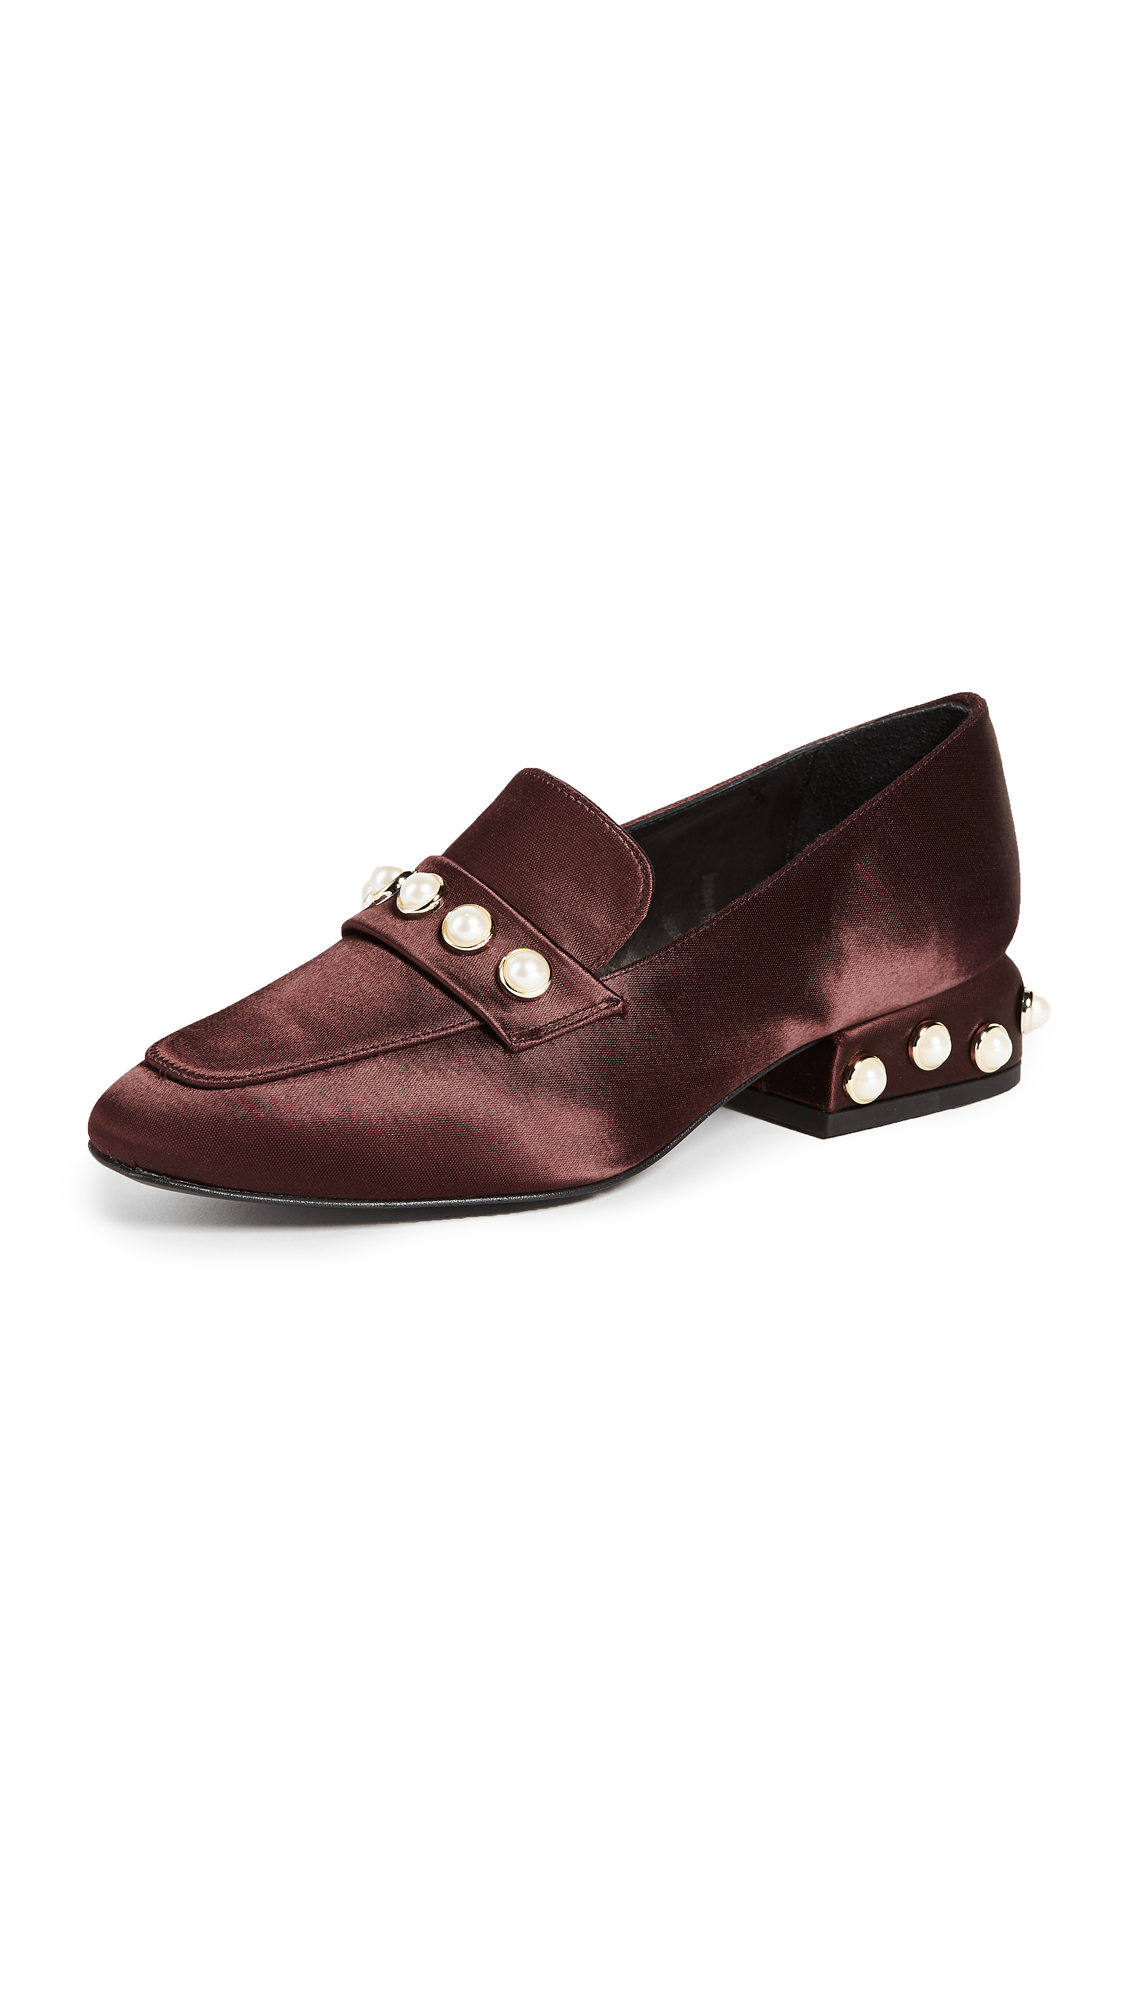 Castaner Mekong Loafer Pumps - Morado